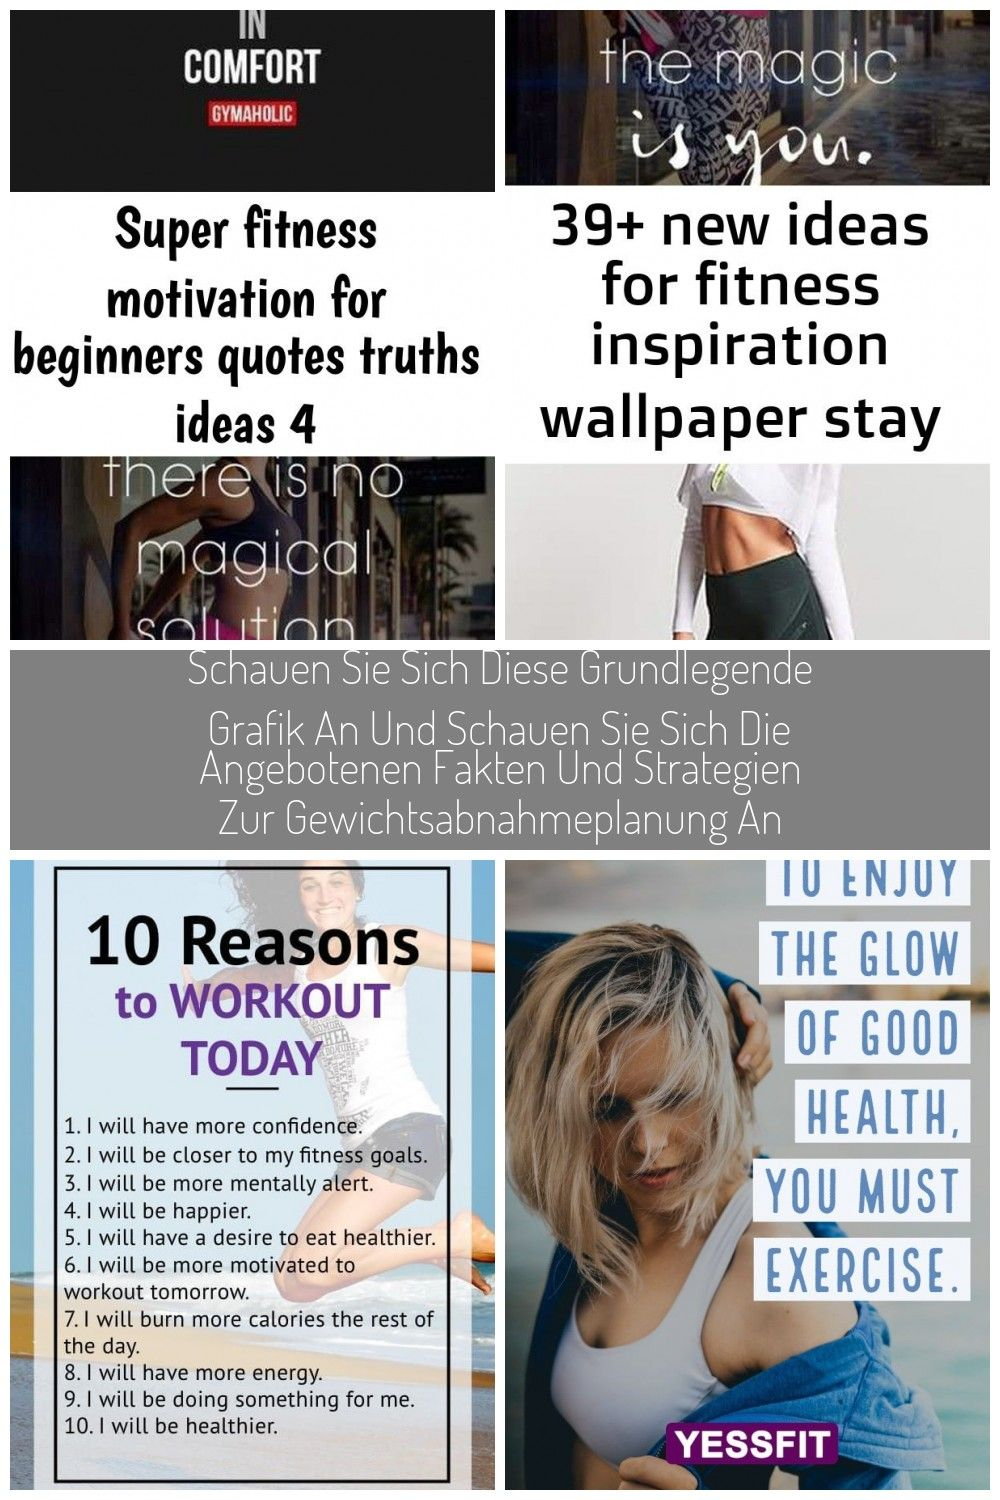 Super fitness motivation for beginners quotes truths Ideas #motivation #quotes #fitness 39+ New Idea...